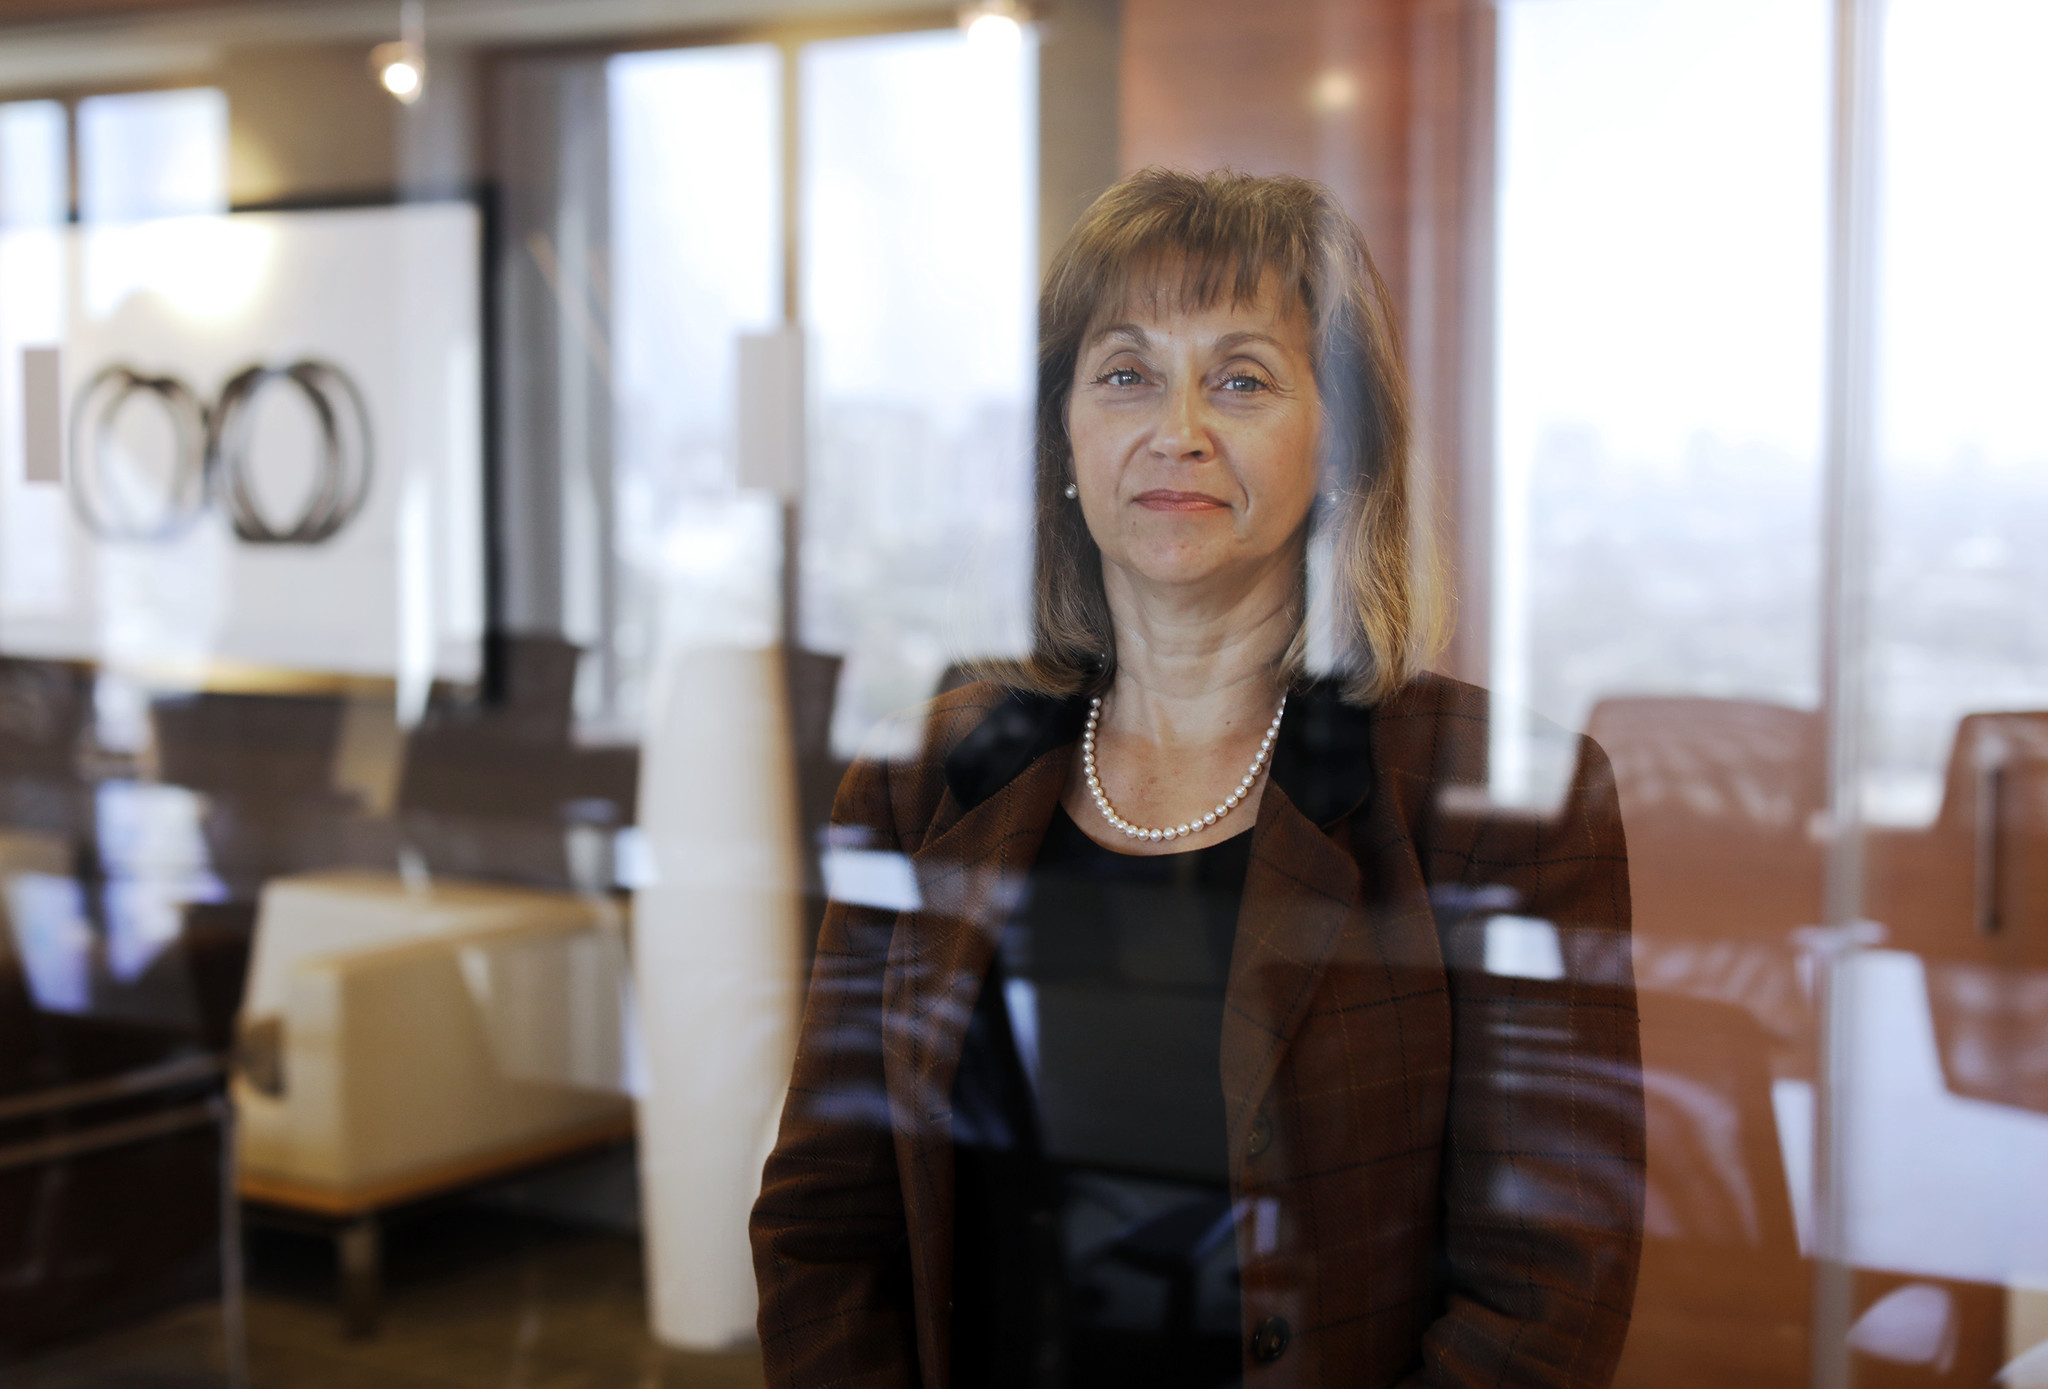 Bonnie Eskenazi finds her passion in entertainment law and playing a role in MeToo movement